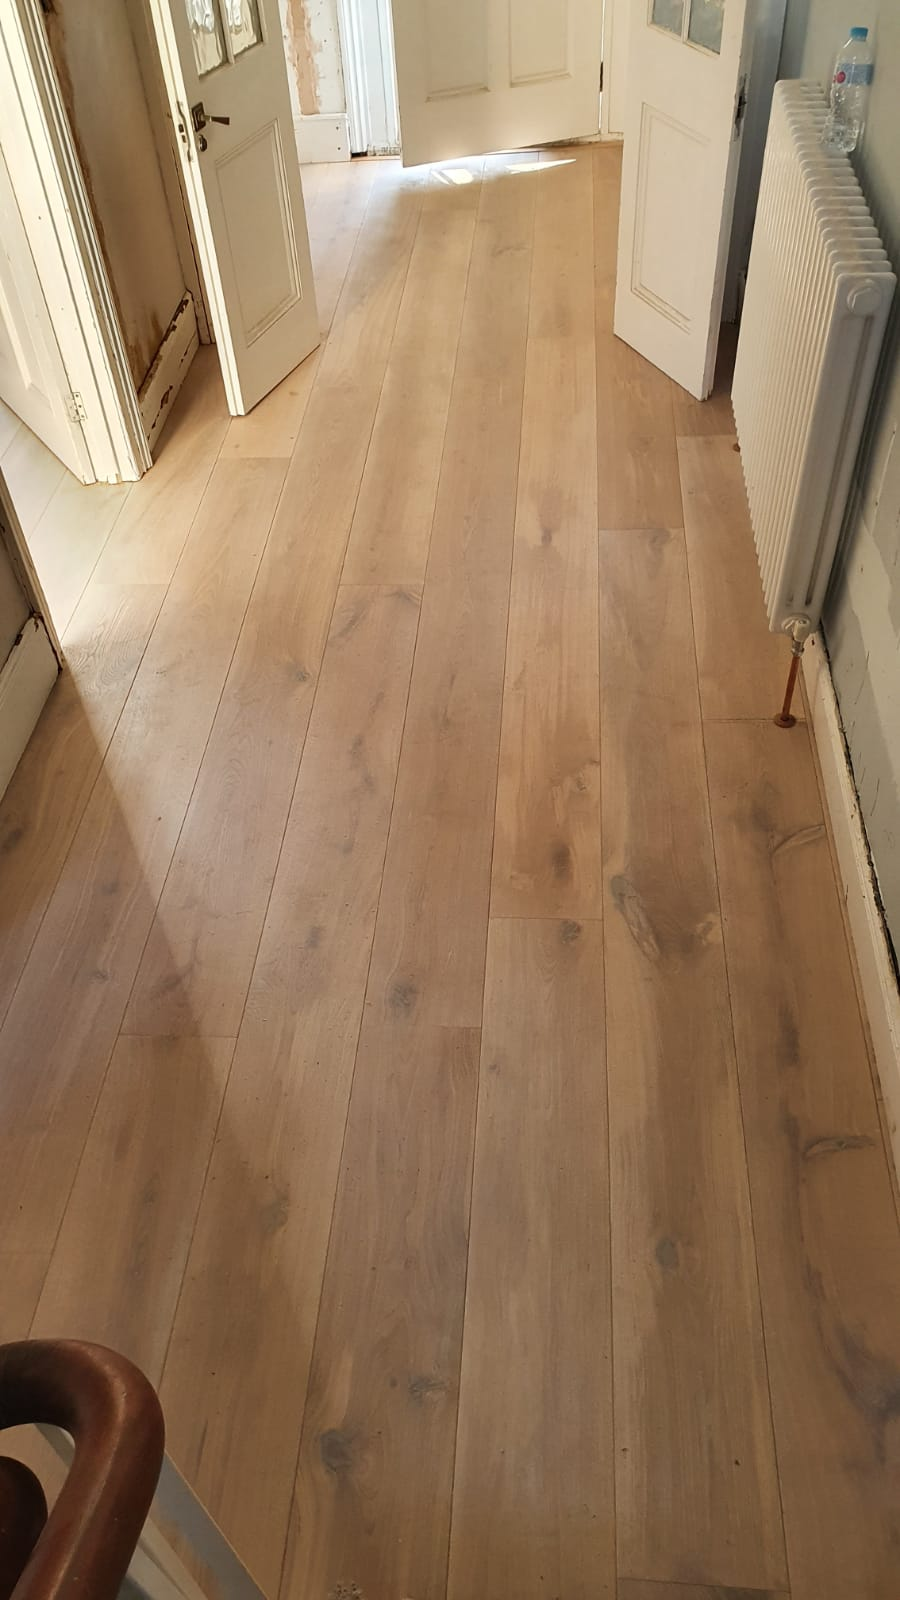 Staki Brushed & White Oil Wood Flooring 4